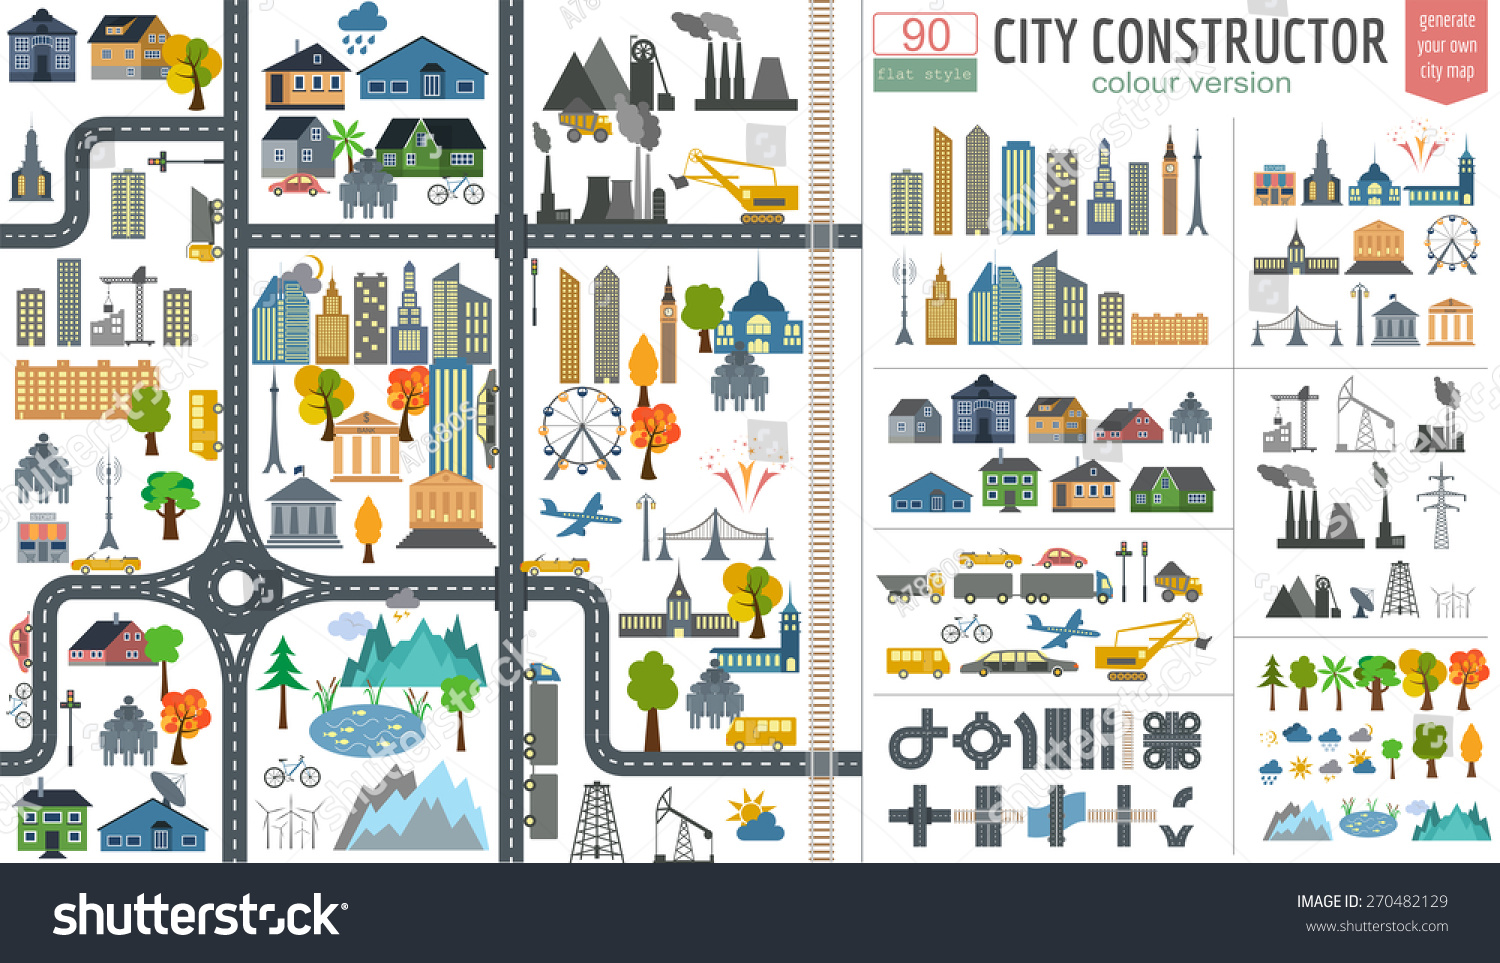 City Map Generator City Map Example Stock Vector